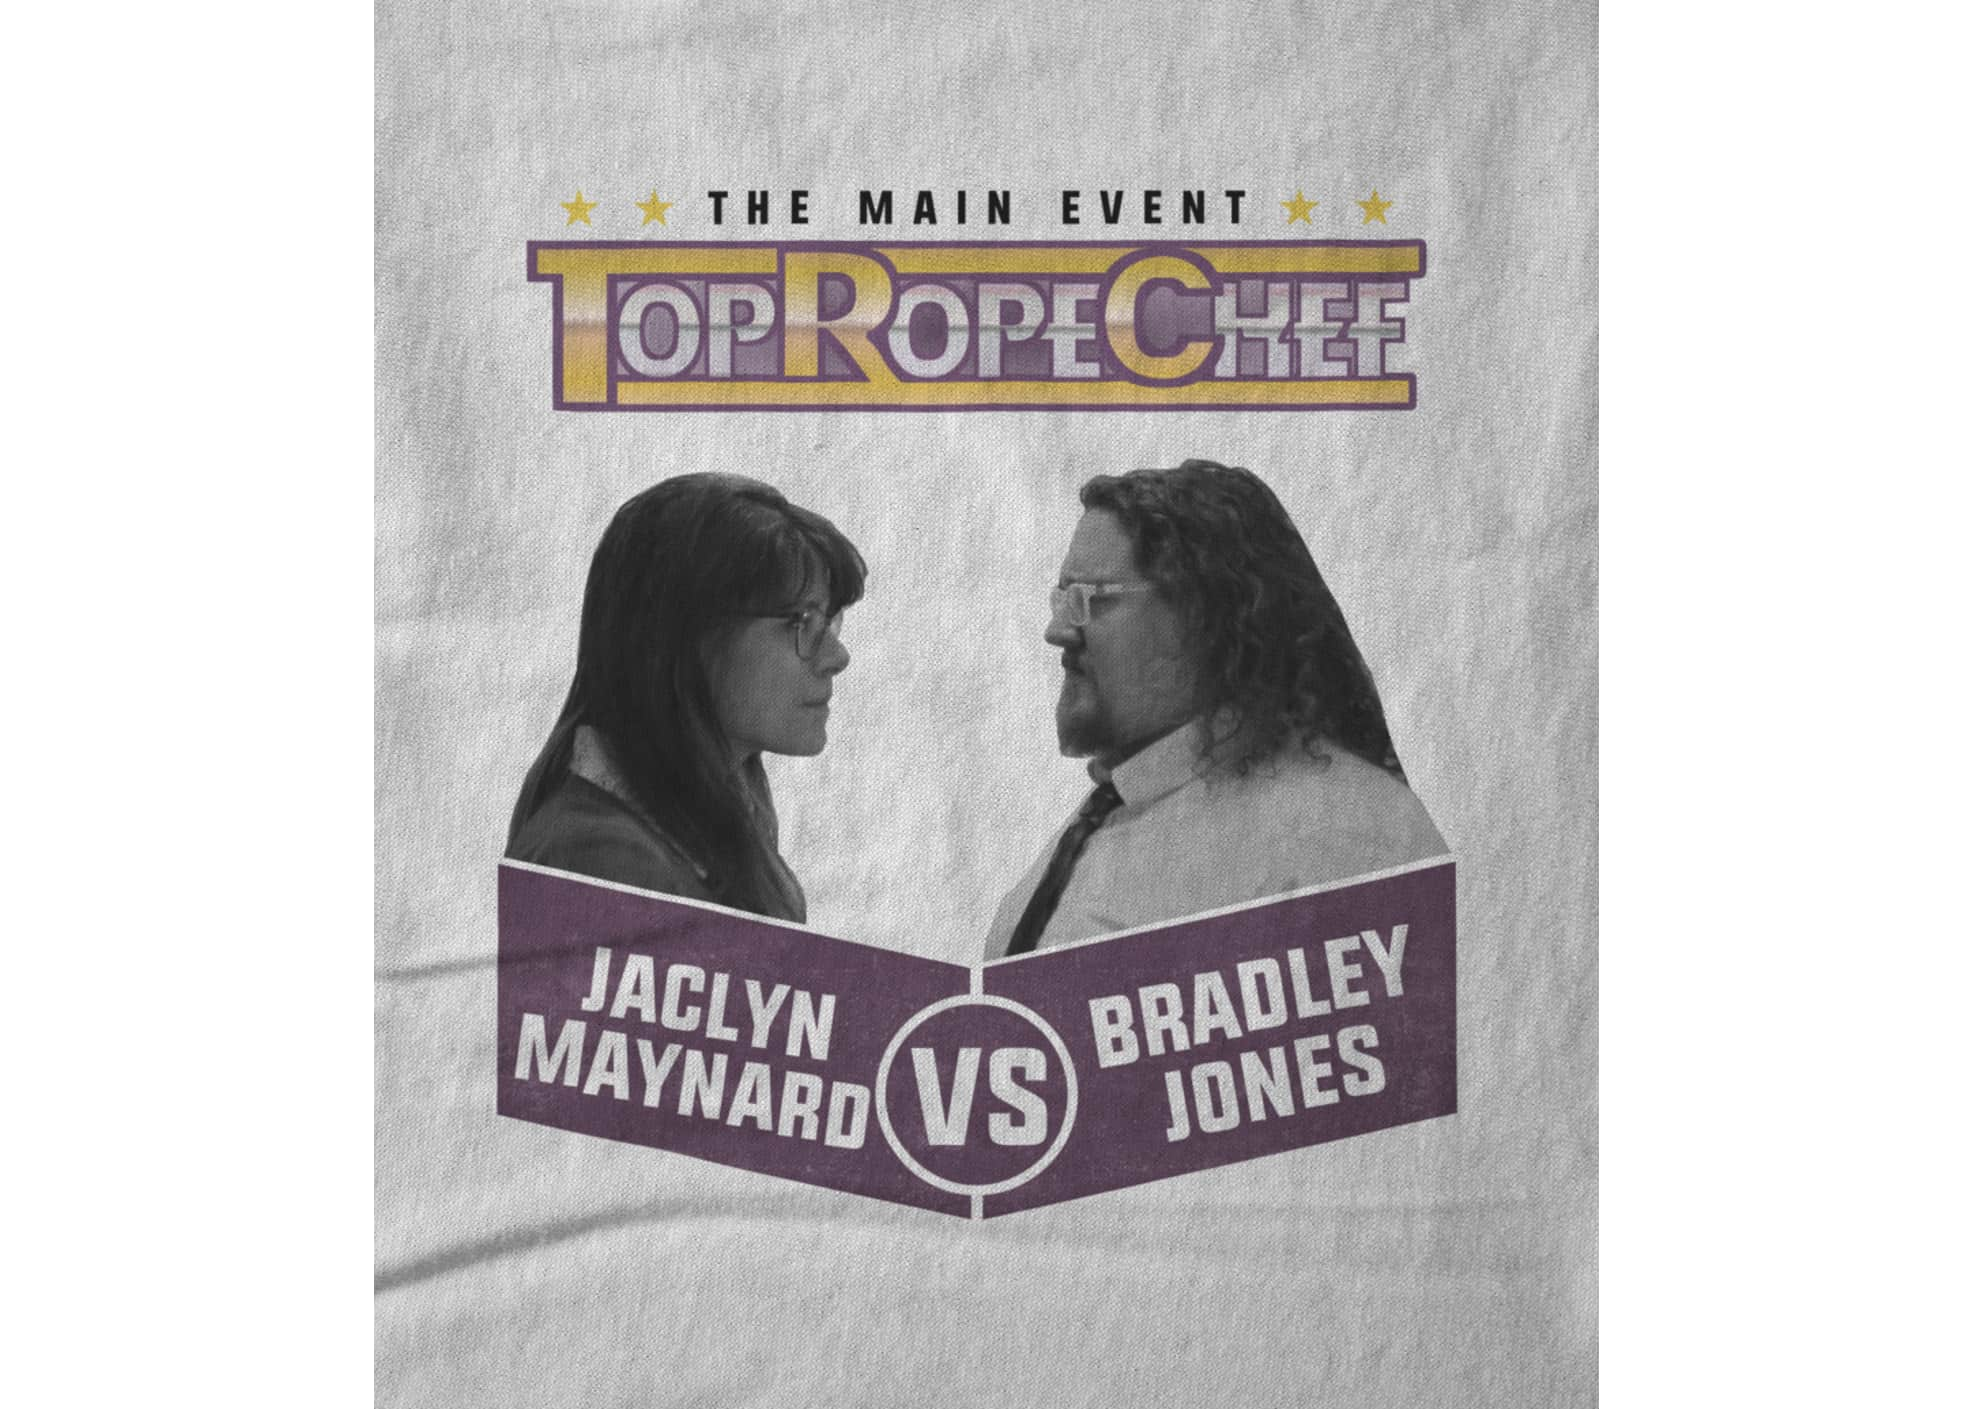 What we remember top rope chef the main event 1530210904